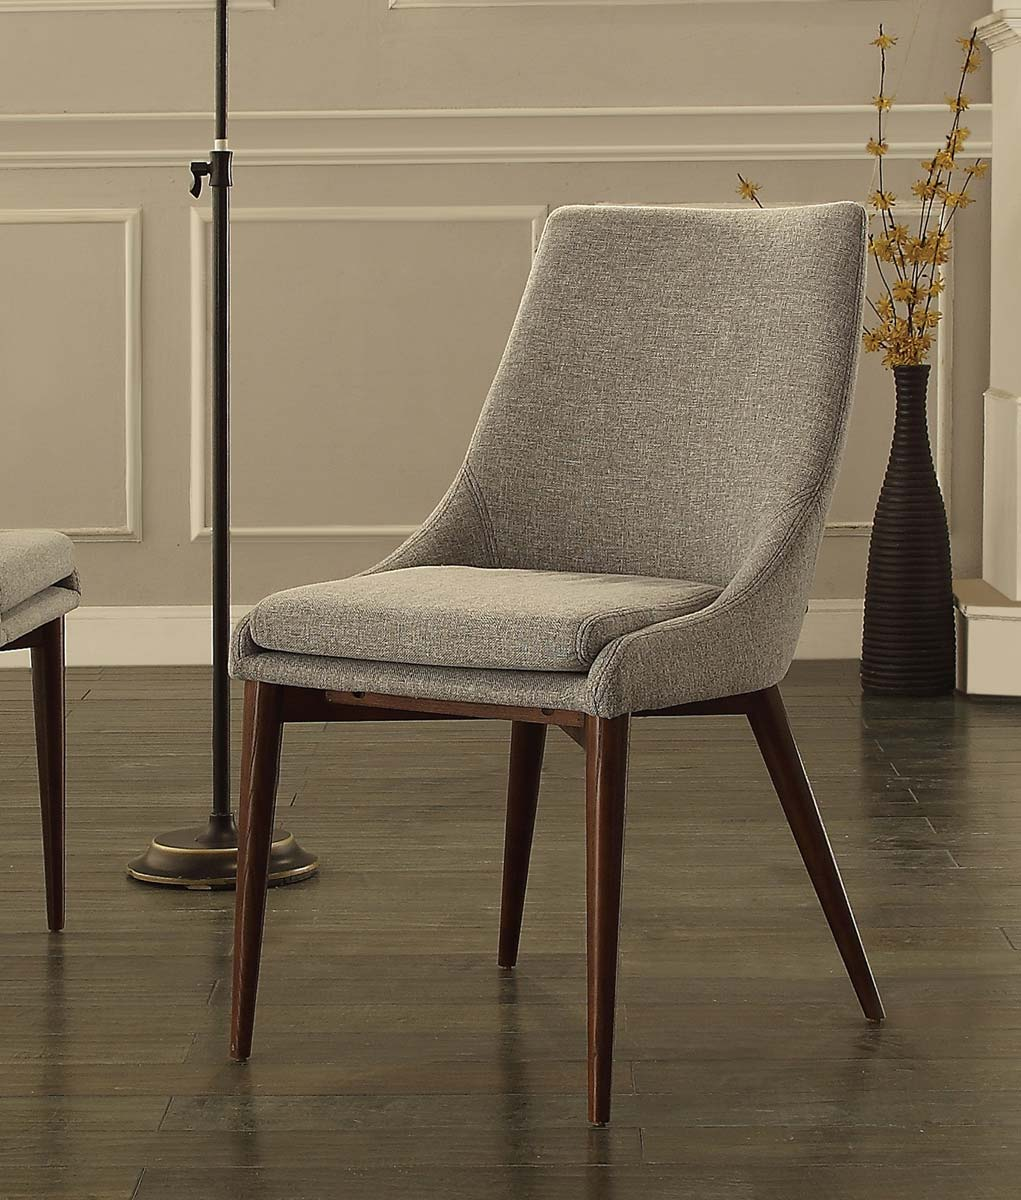 Homelegance Fillmore Side Chair - Cool Gray Fabric